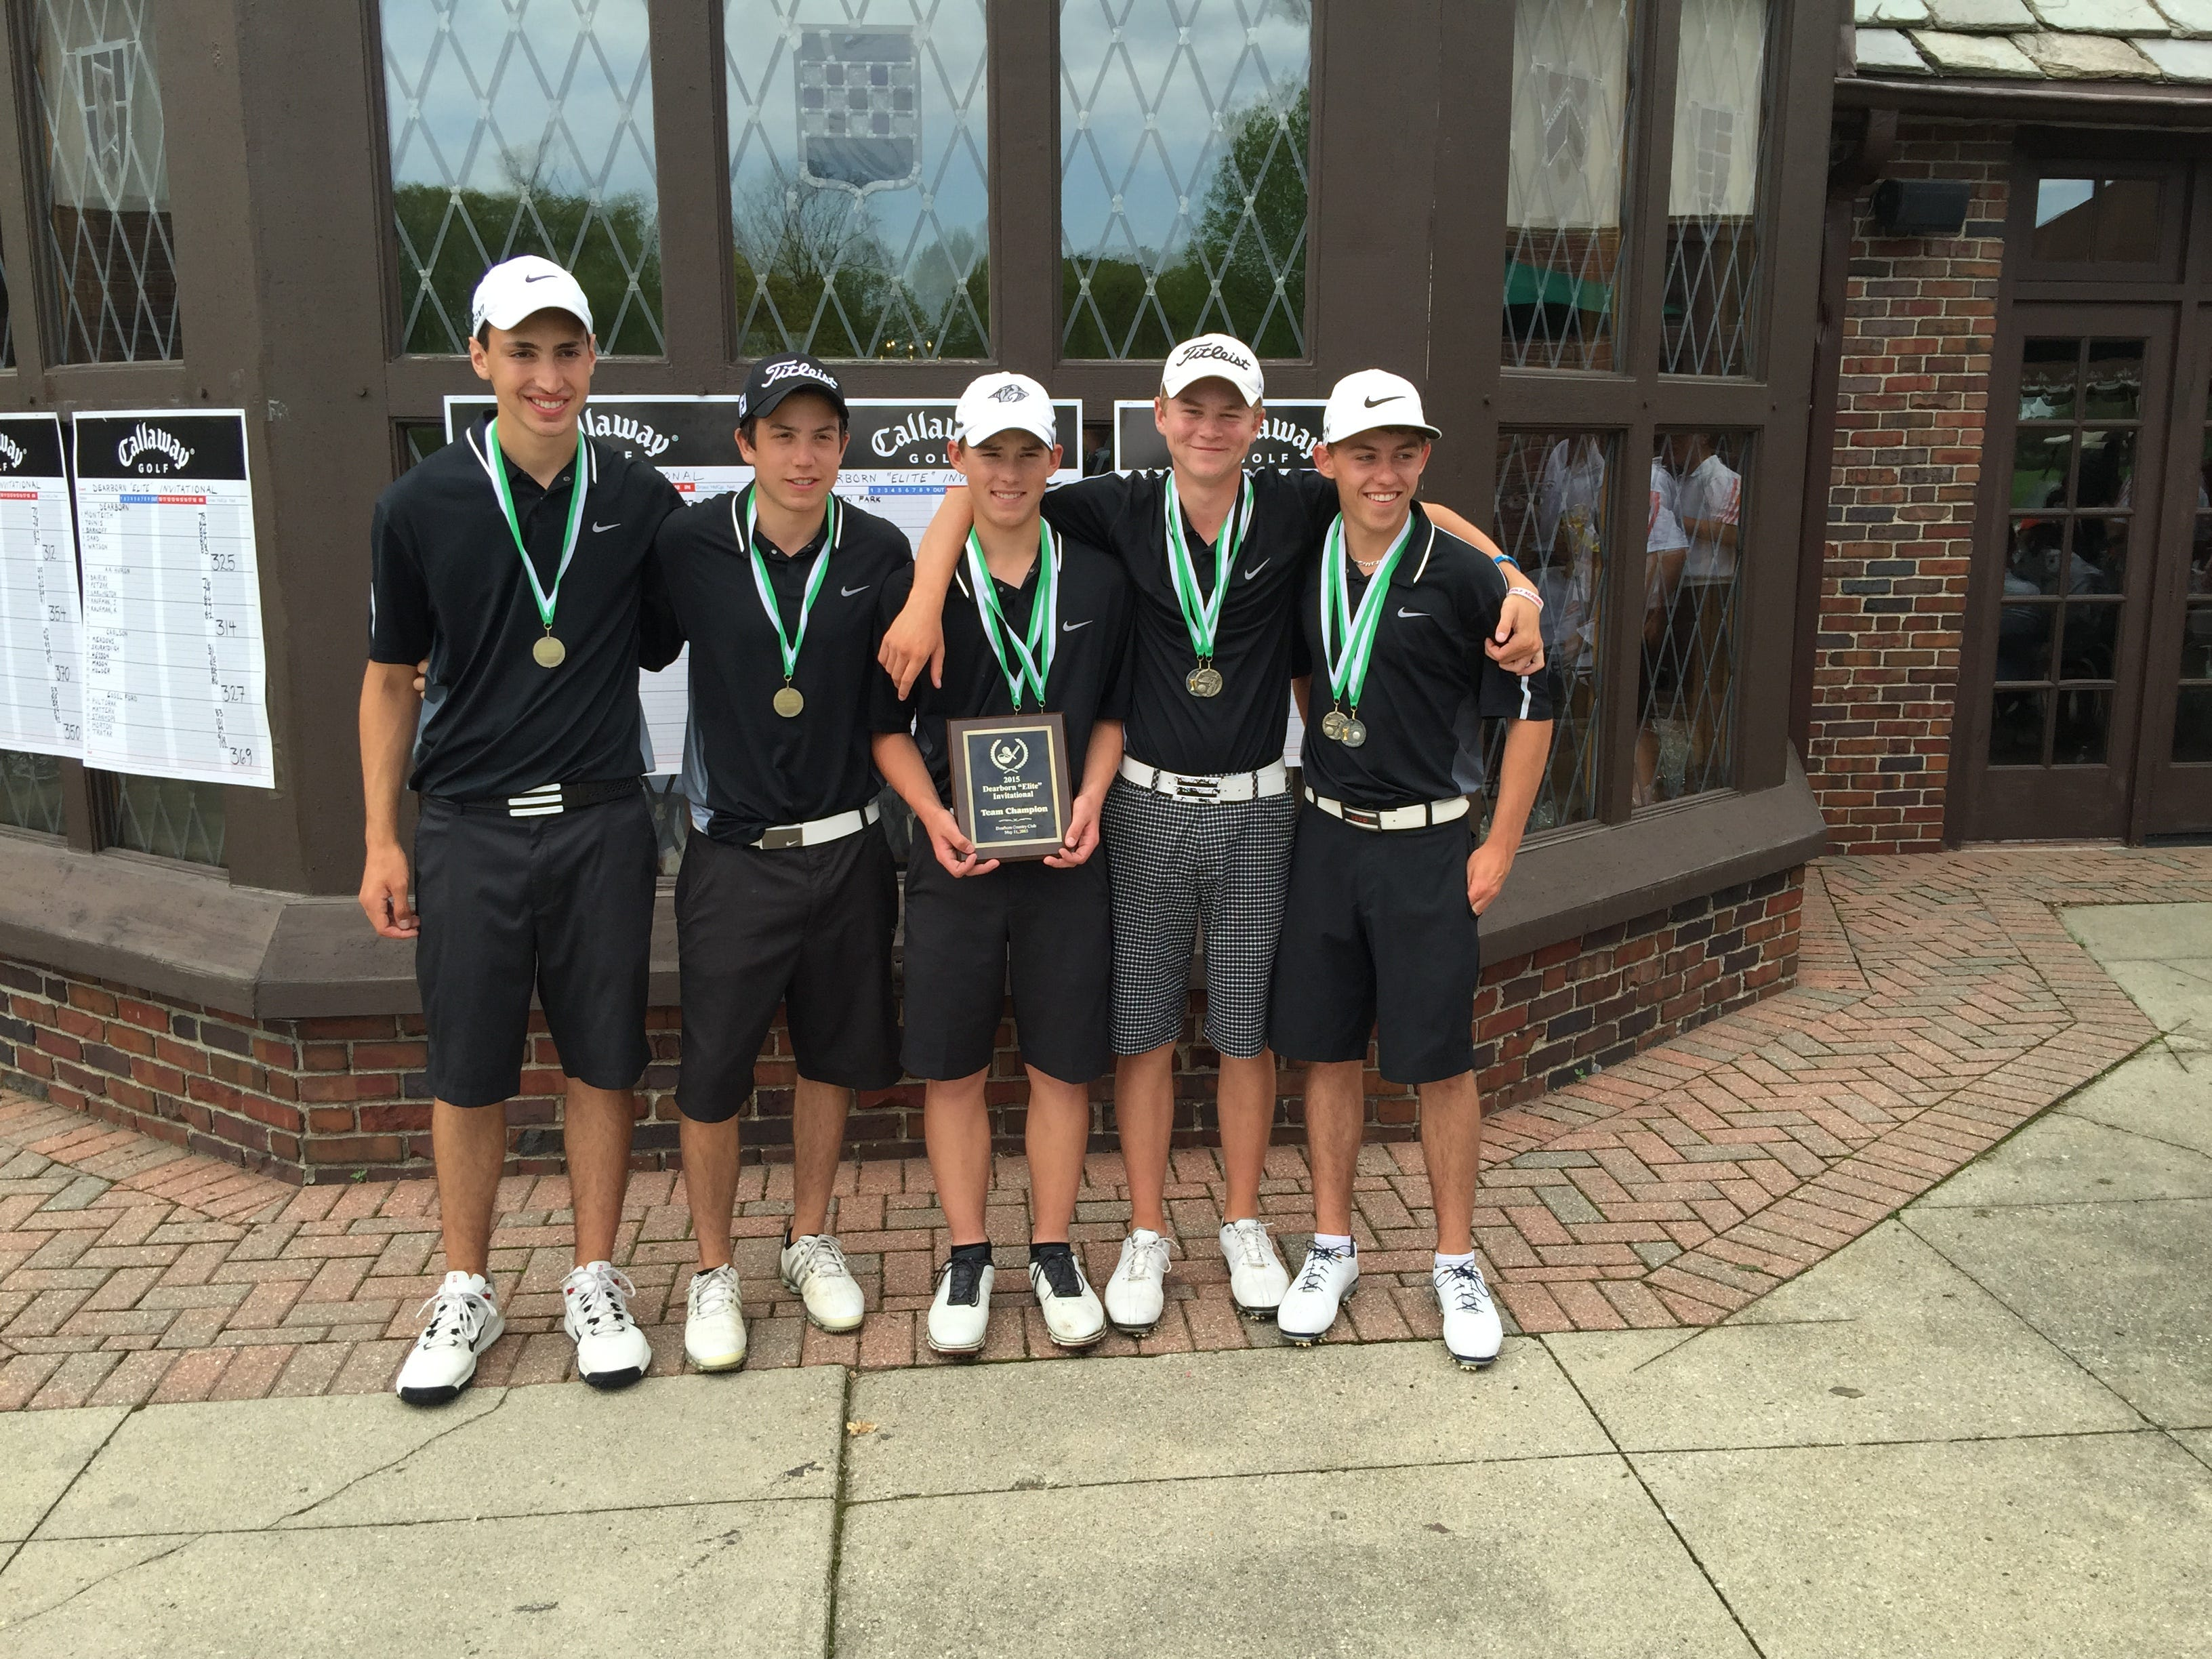 The Plymouth varsity boys golf team captured Monday's Dearborn Elite Golf Tournament. From left are senior co-captains Andrew Lloyd and Conner Zydeck; sophomores Justin Kapke and Jack Boczar; junior Kyle Kozler.